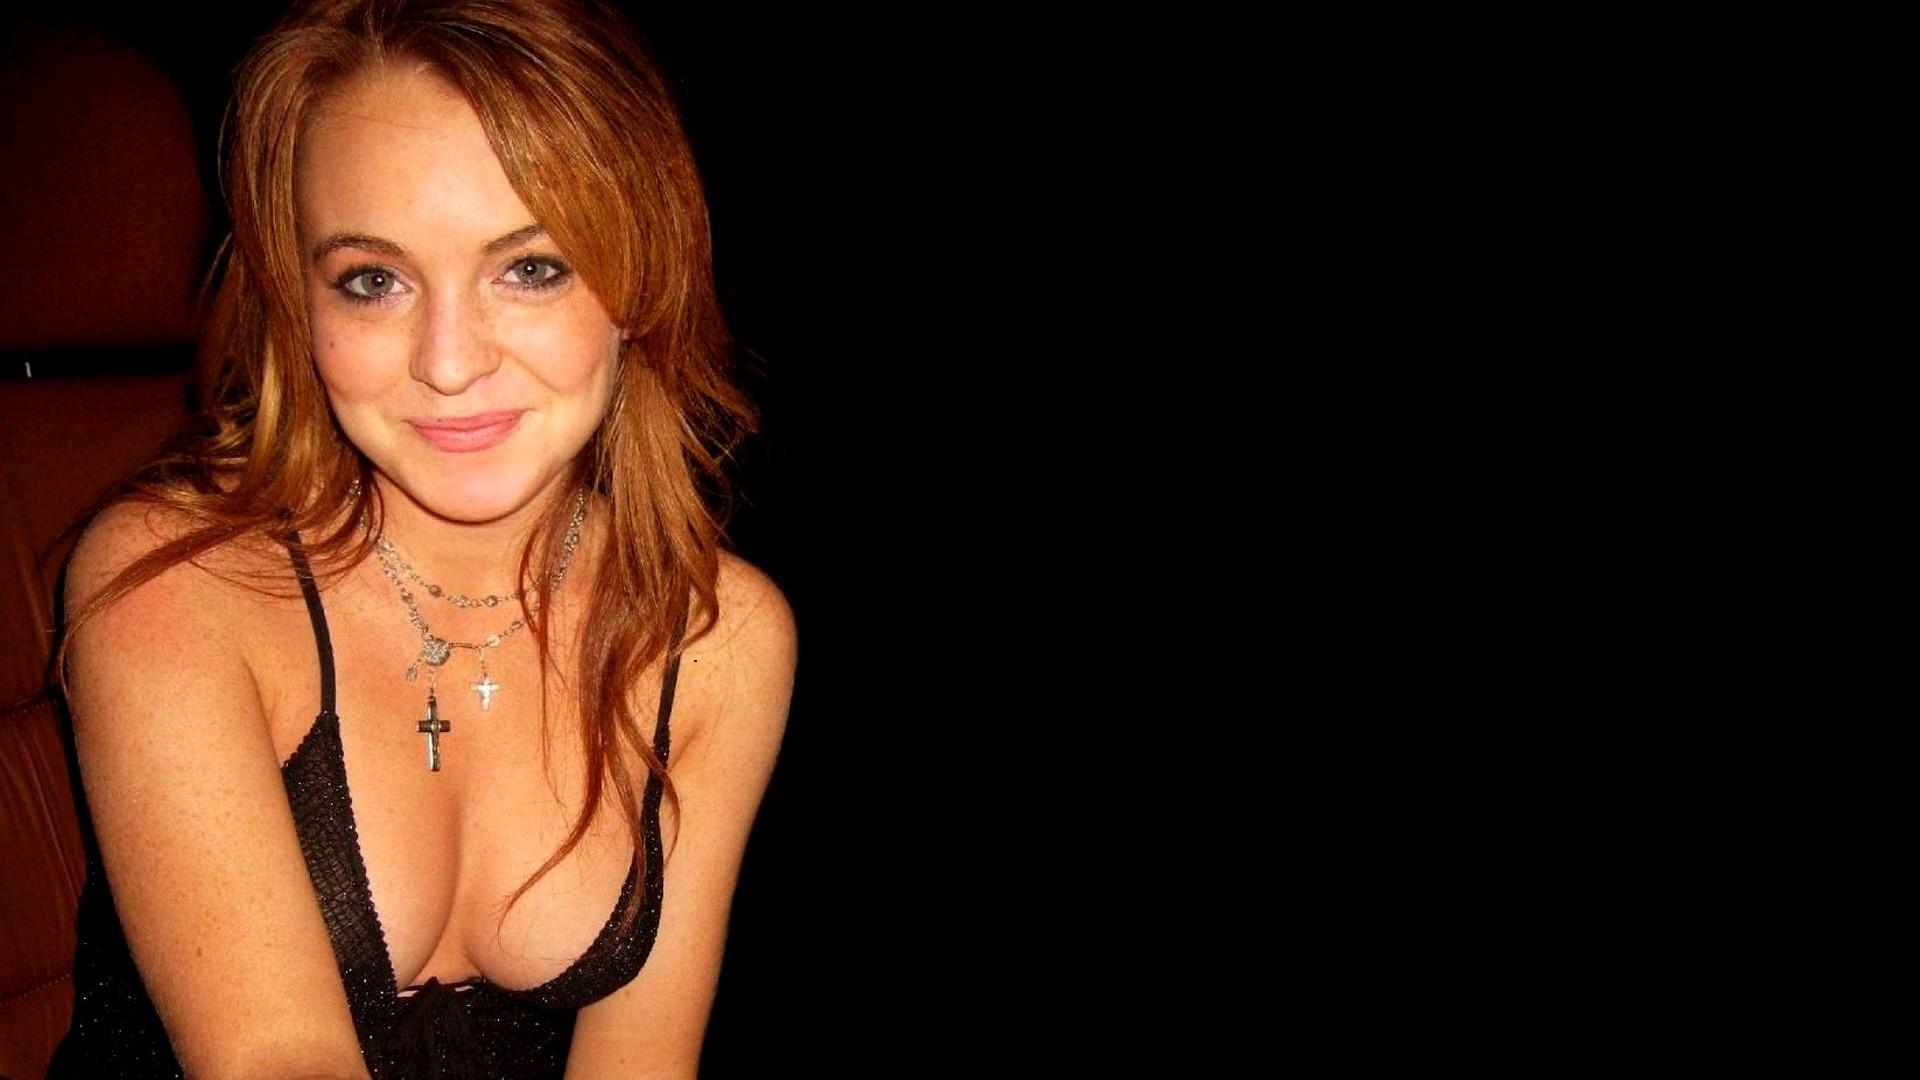 Cleavage Lindsay Lohan nudes (72 photo), Topless, Fappening, Twitter, bra 2006